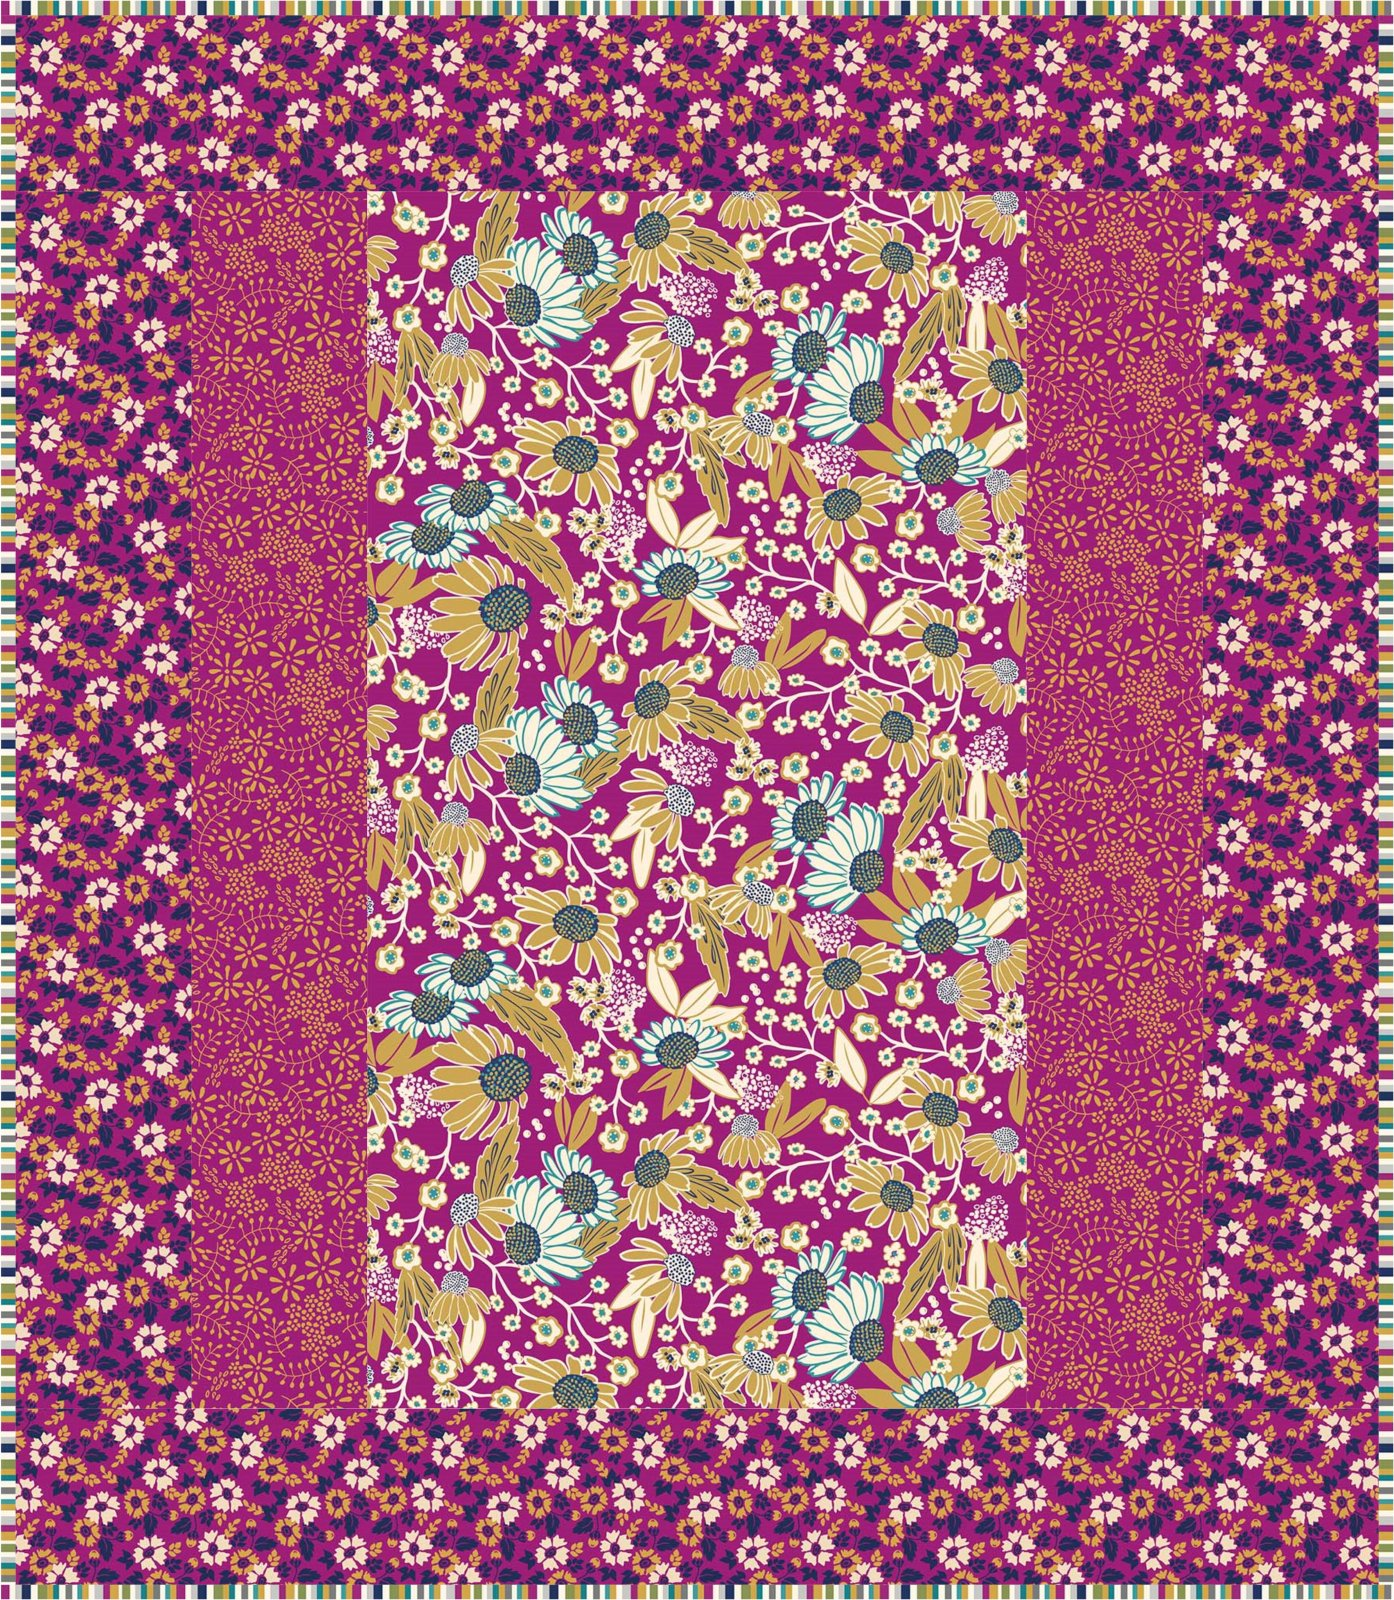 Purple Willowberry 1 Hour Quilt Kit